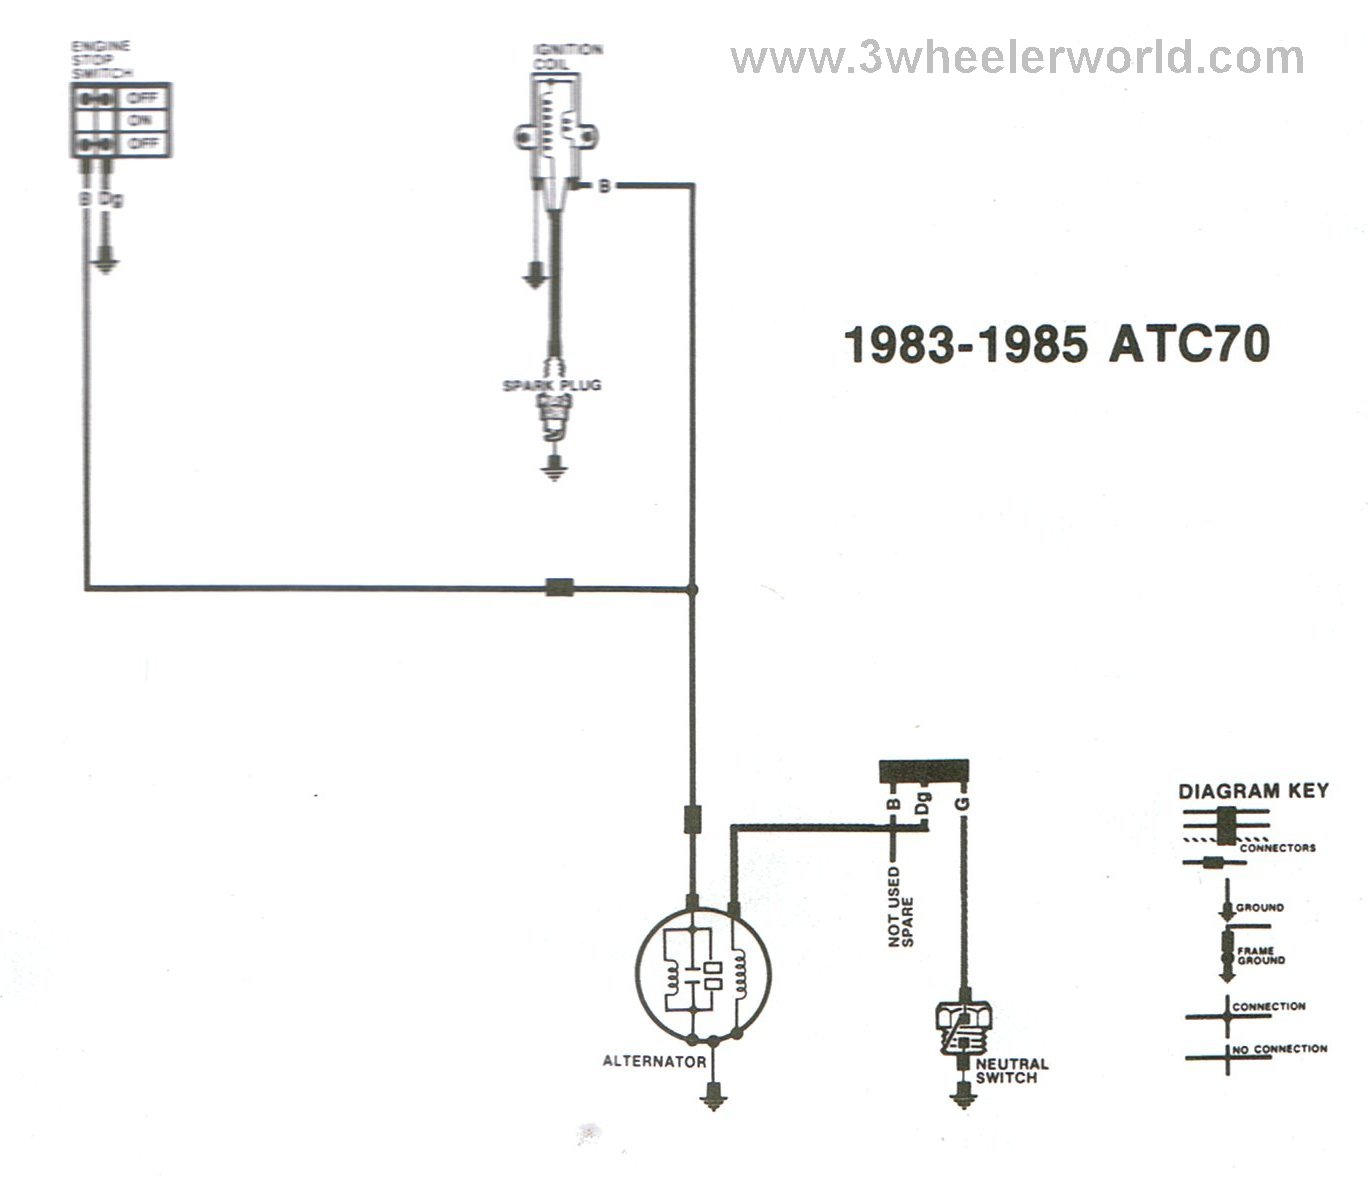 ATC70x83Thru85 3 wheeler world tech help honda wiring diagrams atc 70 wiring diagram at aneh.co